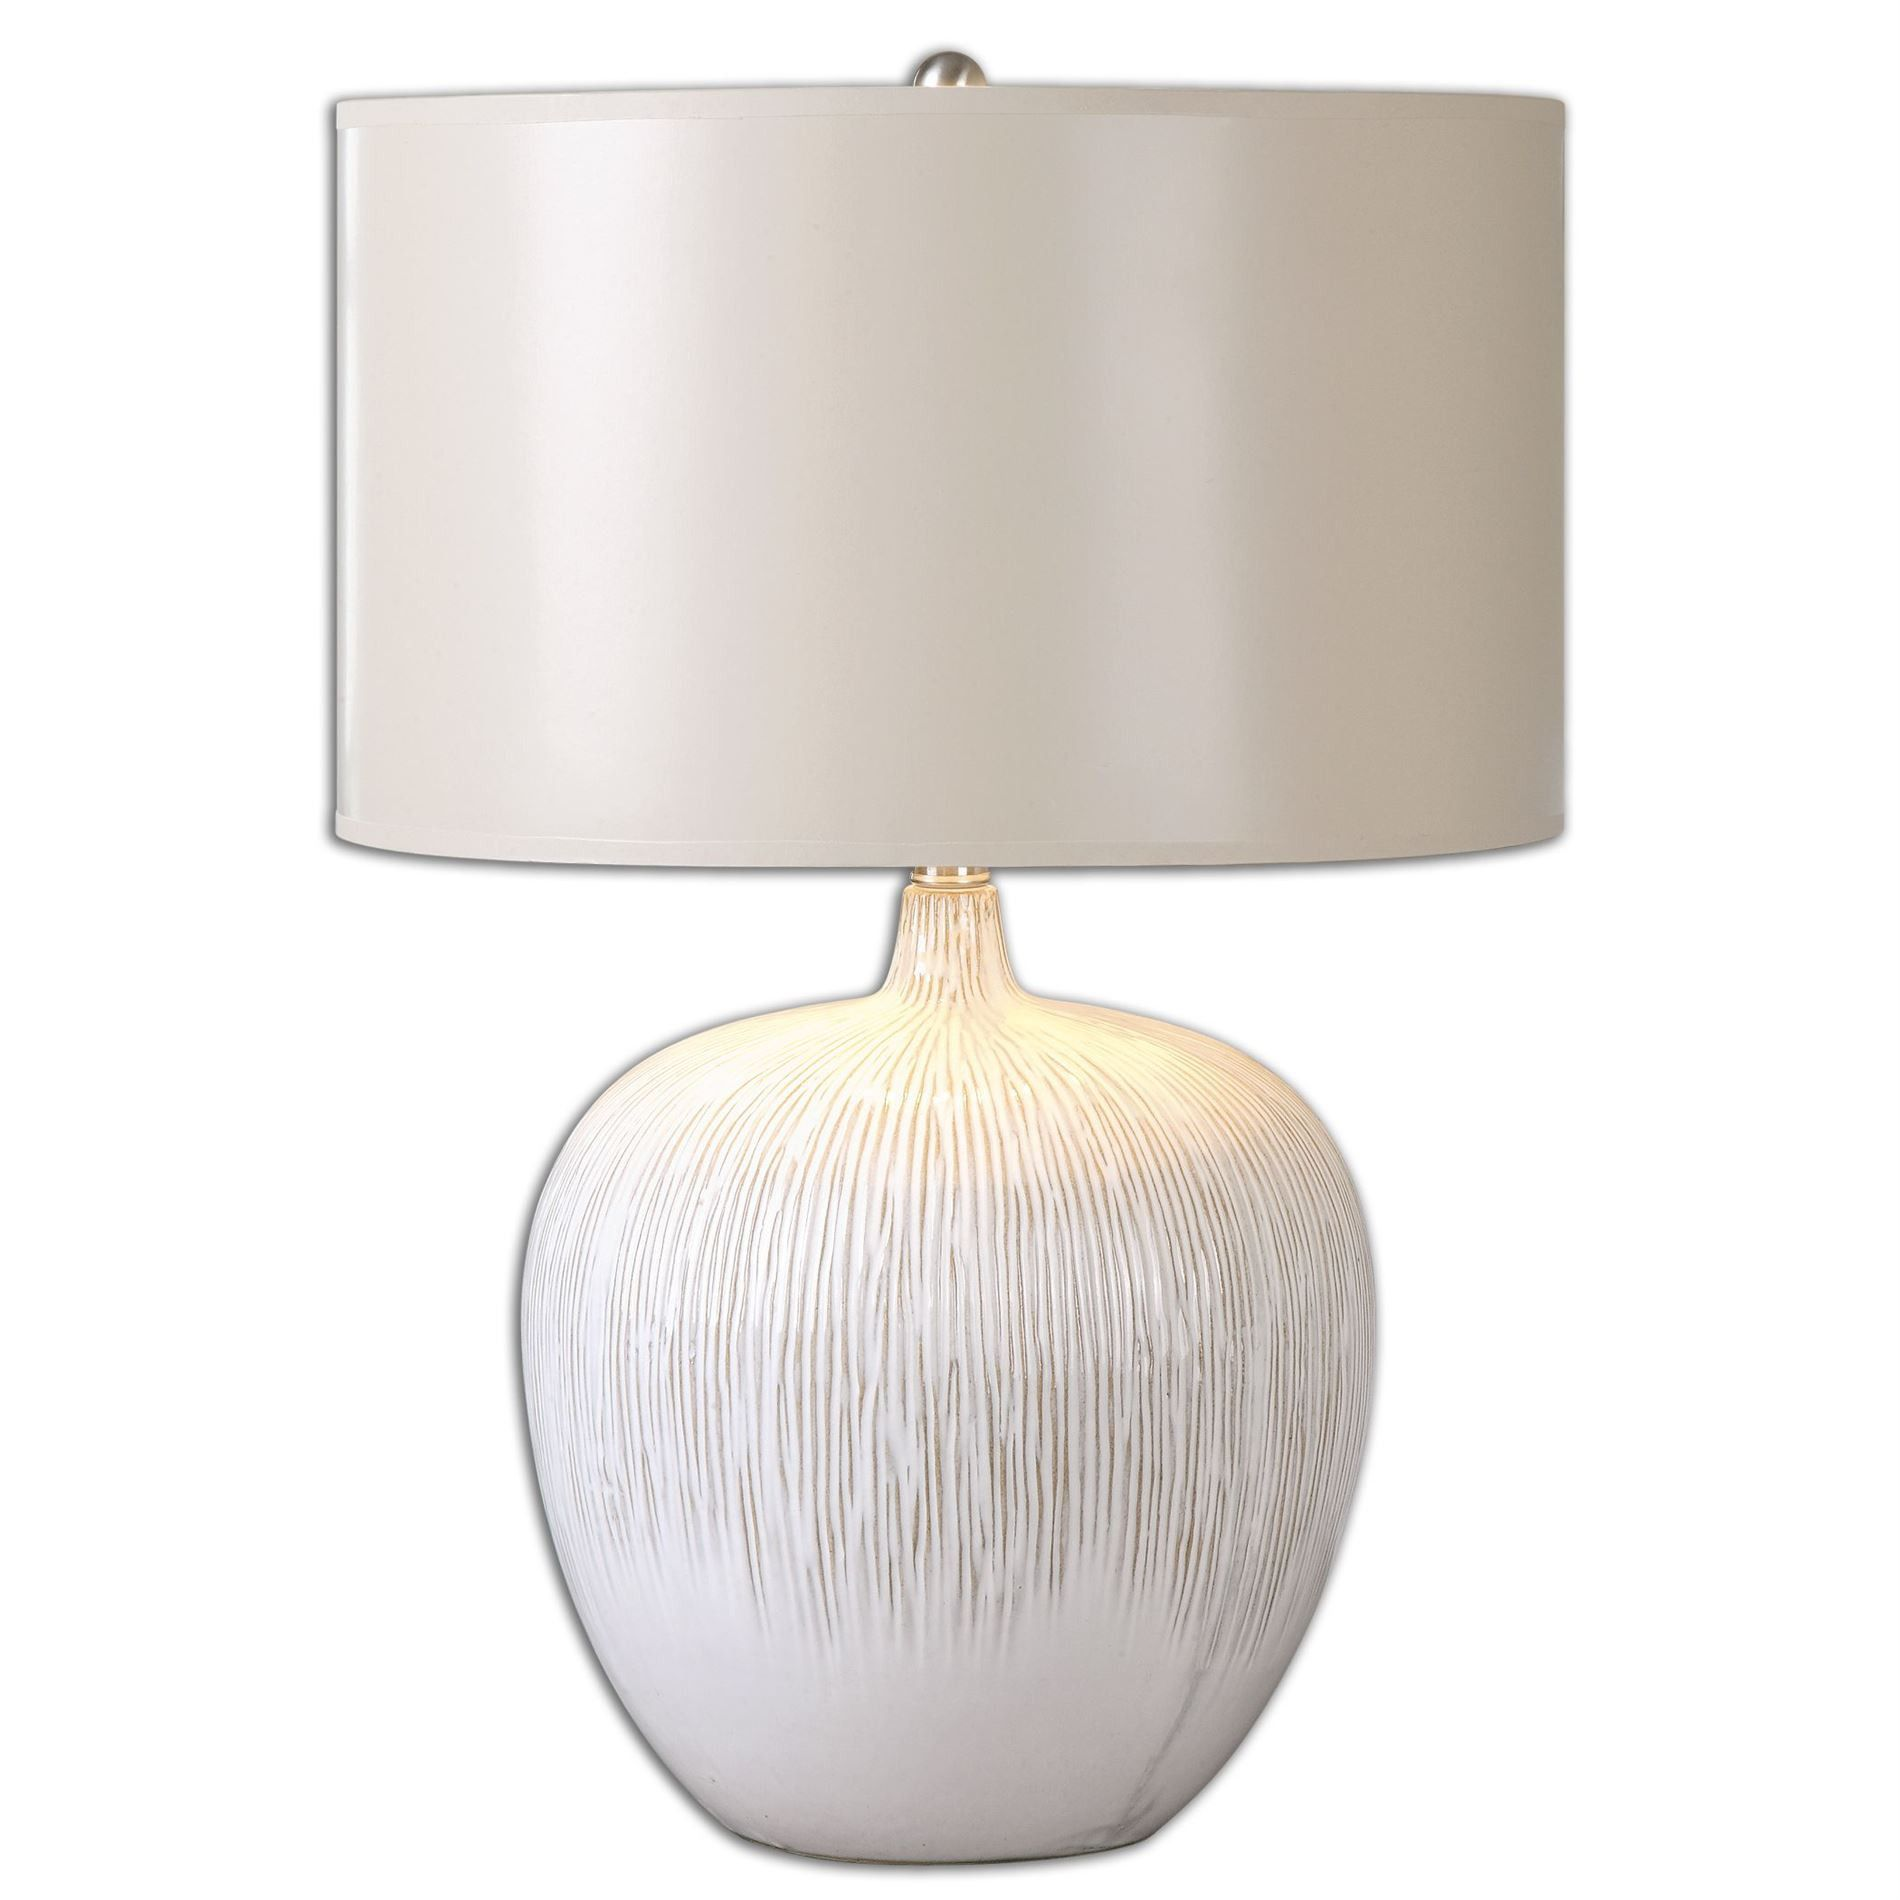 Textured Ceramic Accent Lamp (With images